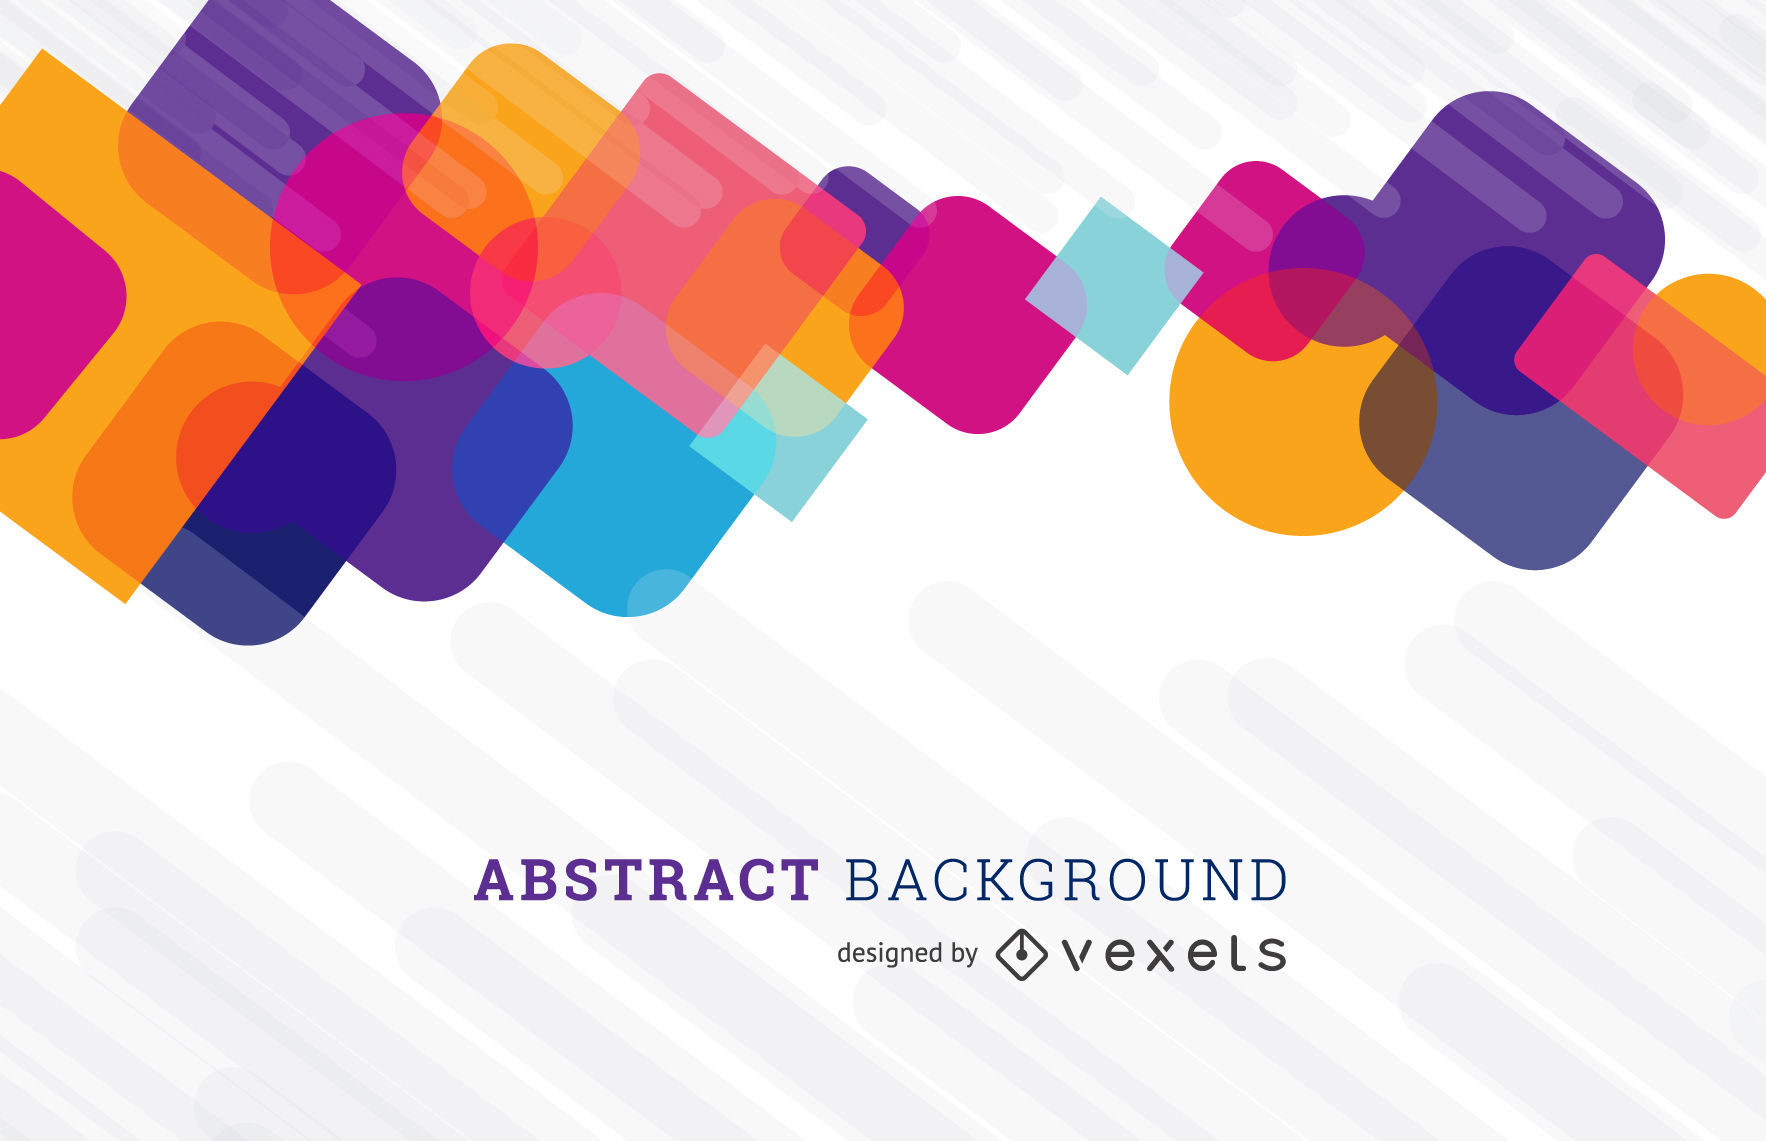 Abstract background with colorful shapes design - Vector download